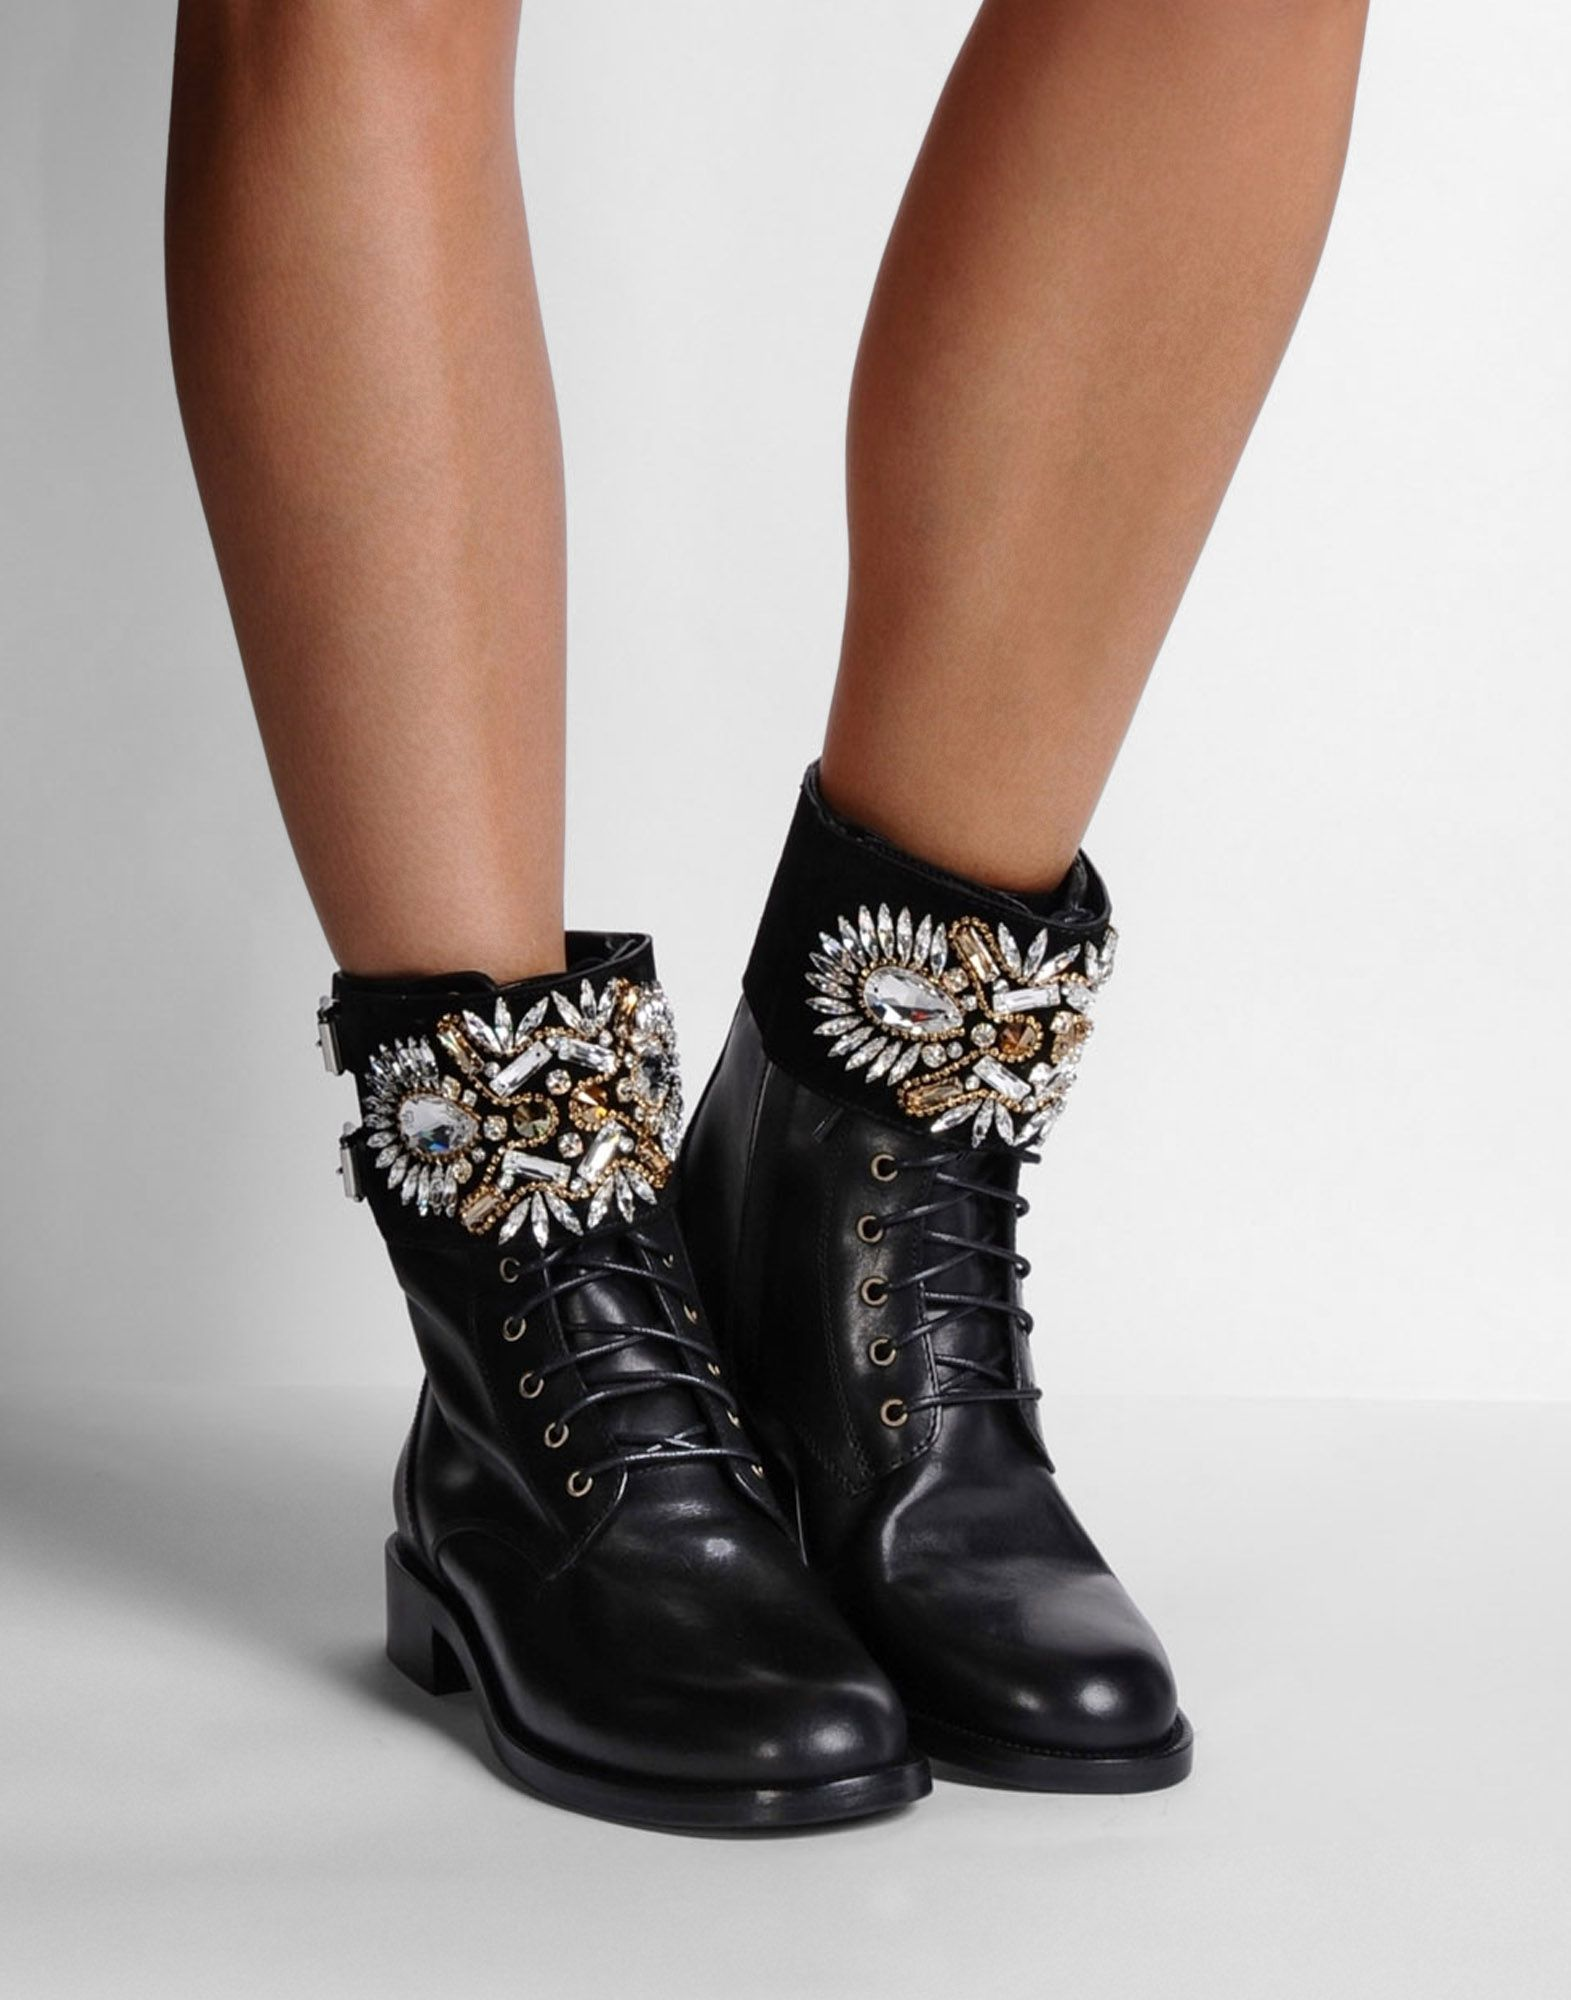 René Caovilla Rene Caovilla Suede Embellished Booties looking for for sale xeMdVGZNg